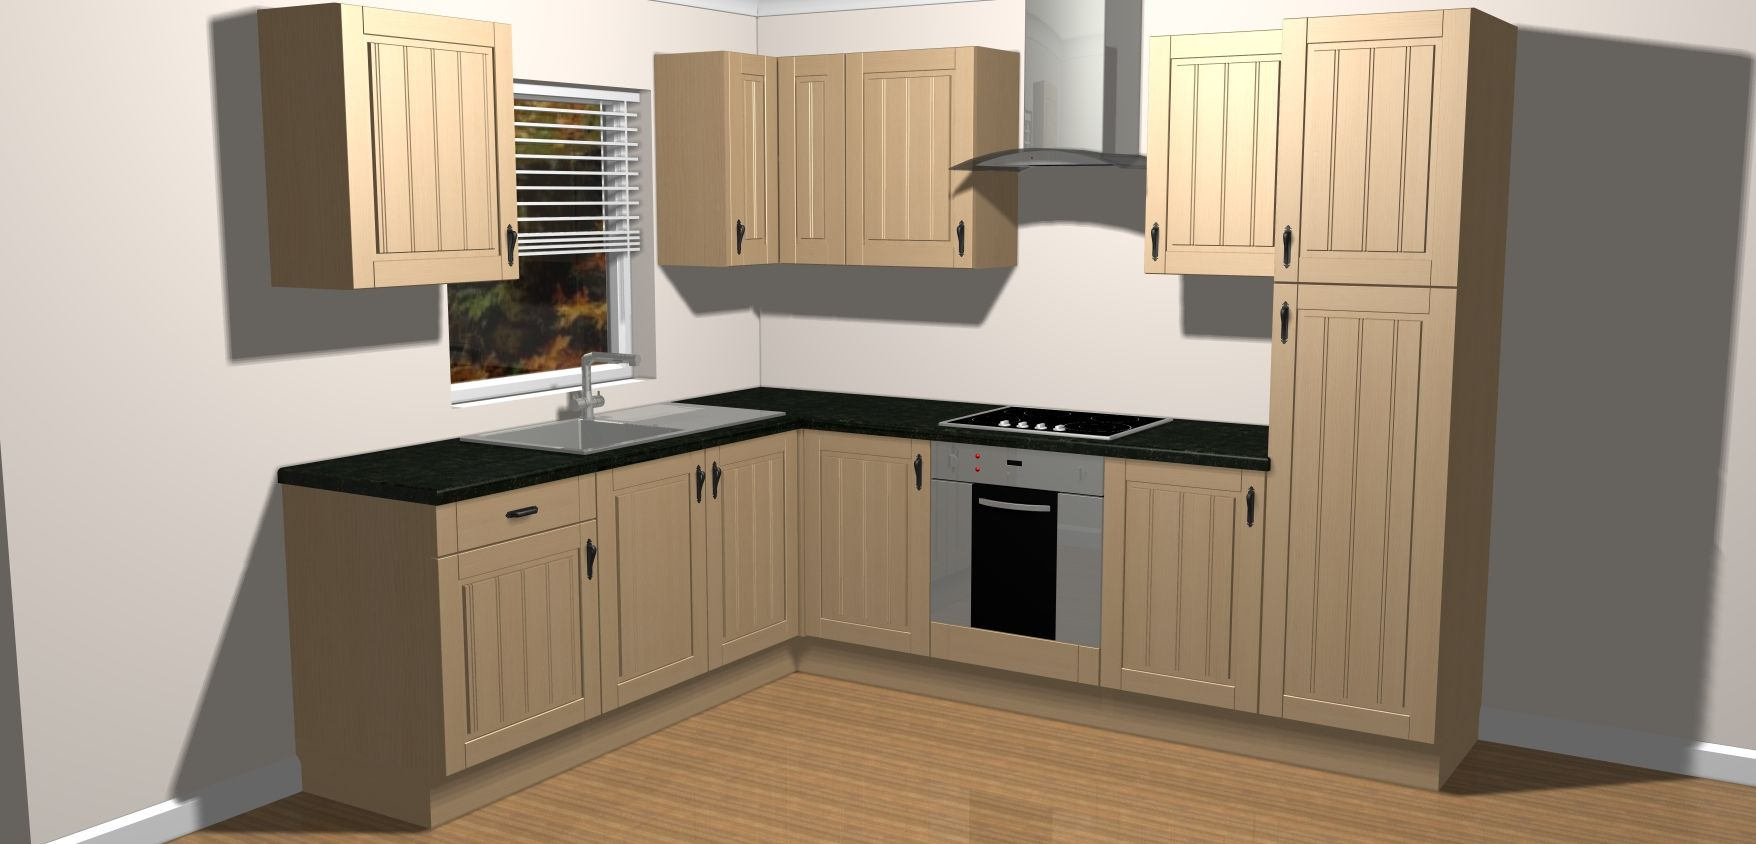 Image gallery kitchen units for Kitchen cabinets zimbabwe